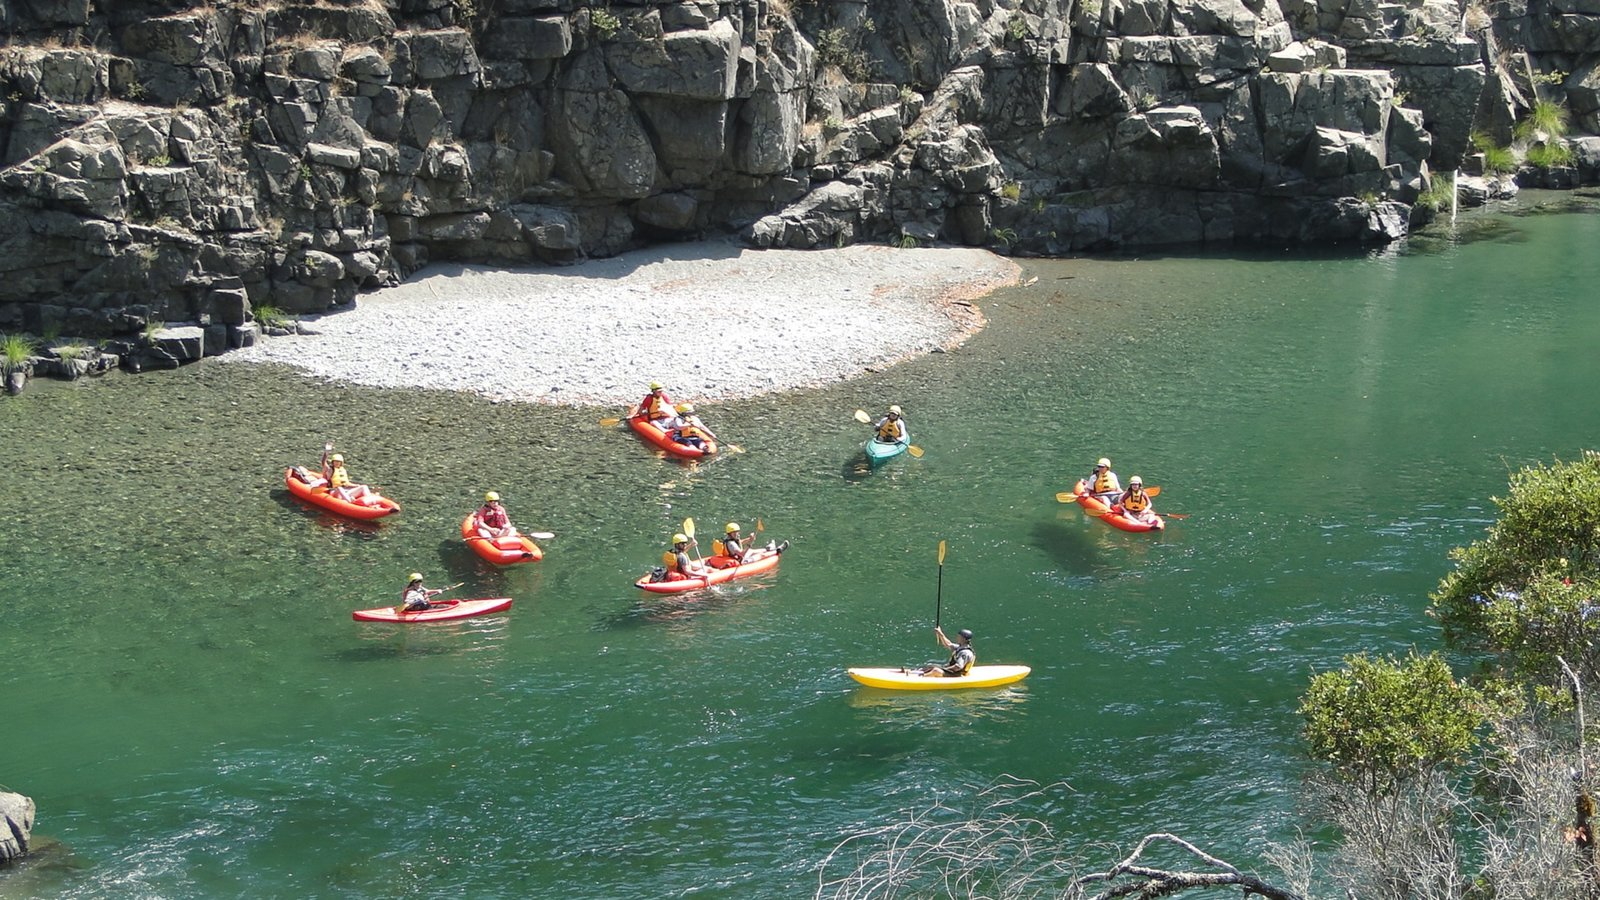 Redwood National and State Parks which includes rugged coastline, kayaking or canoeing and a river or creek